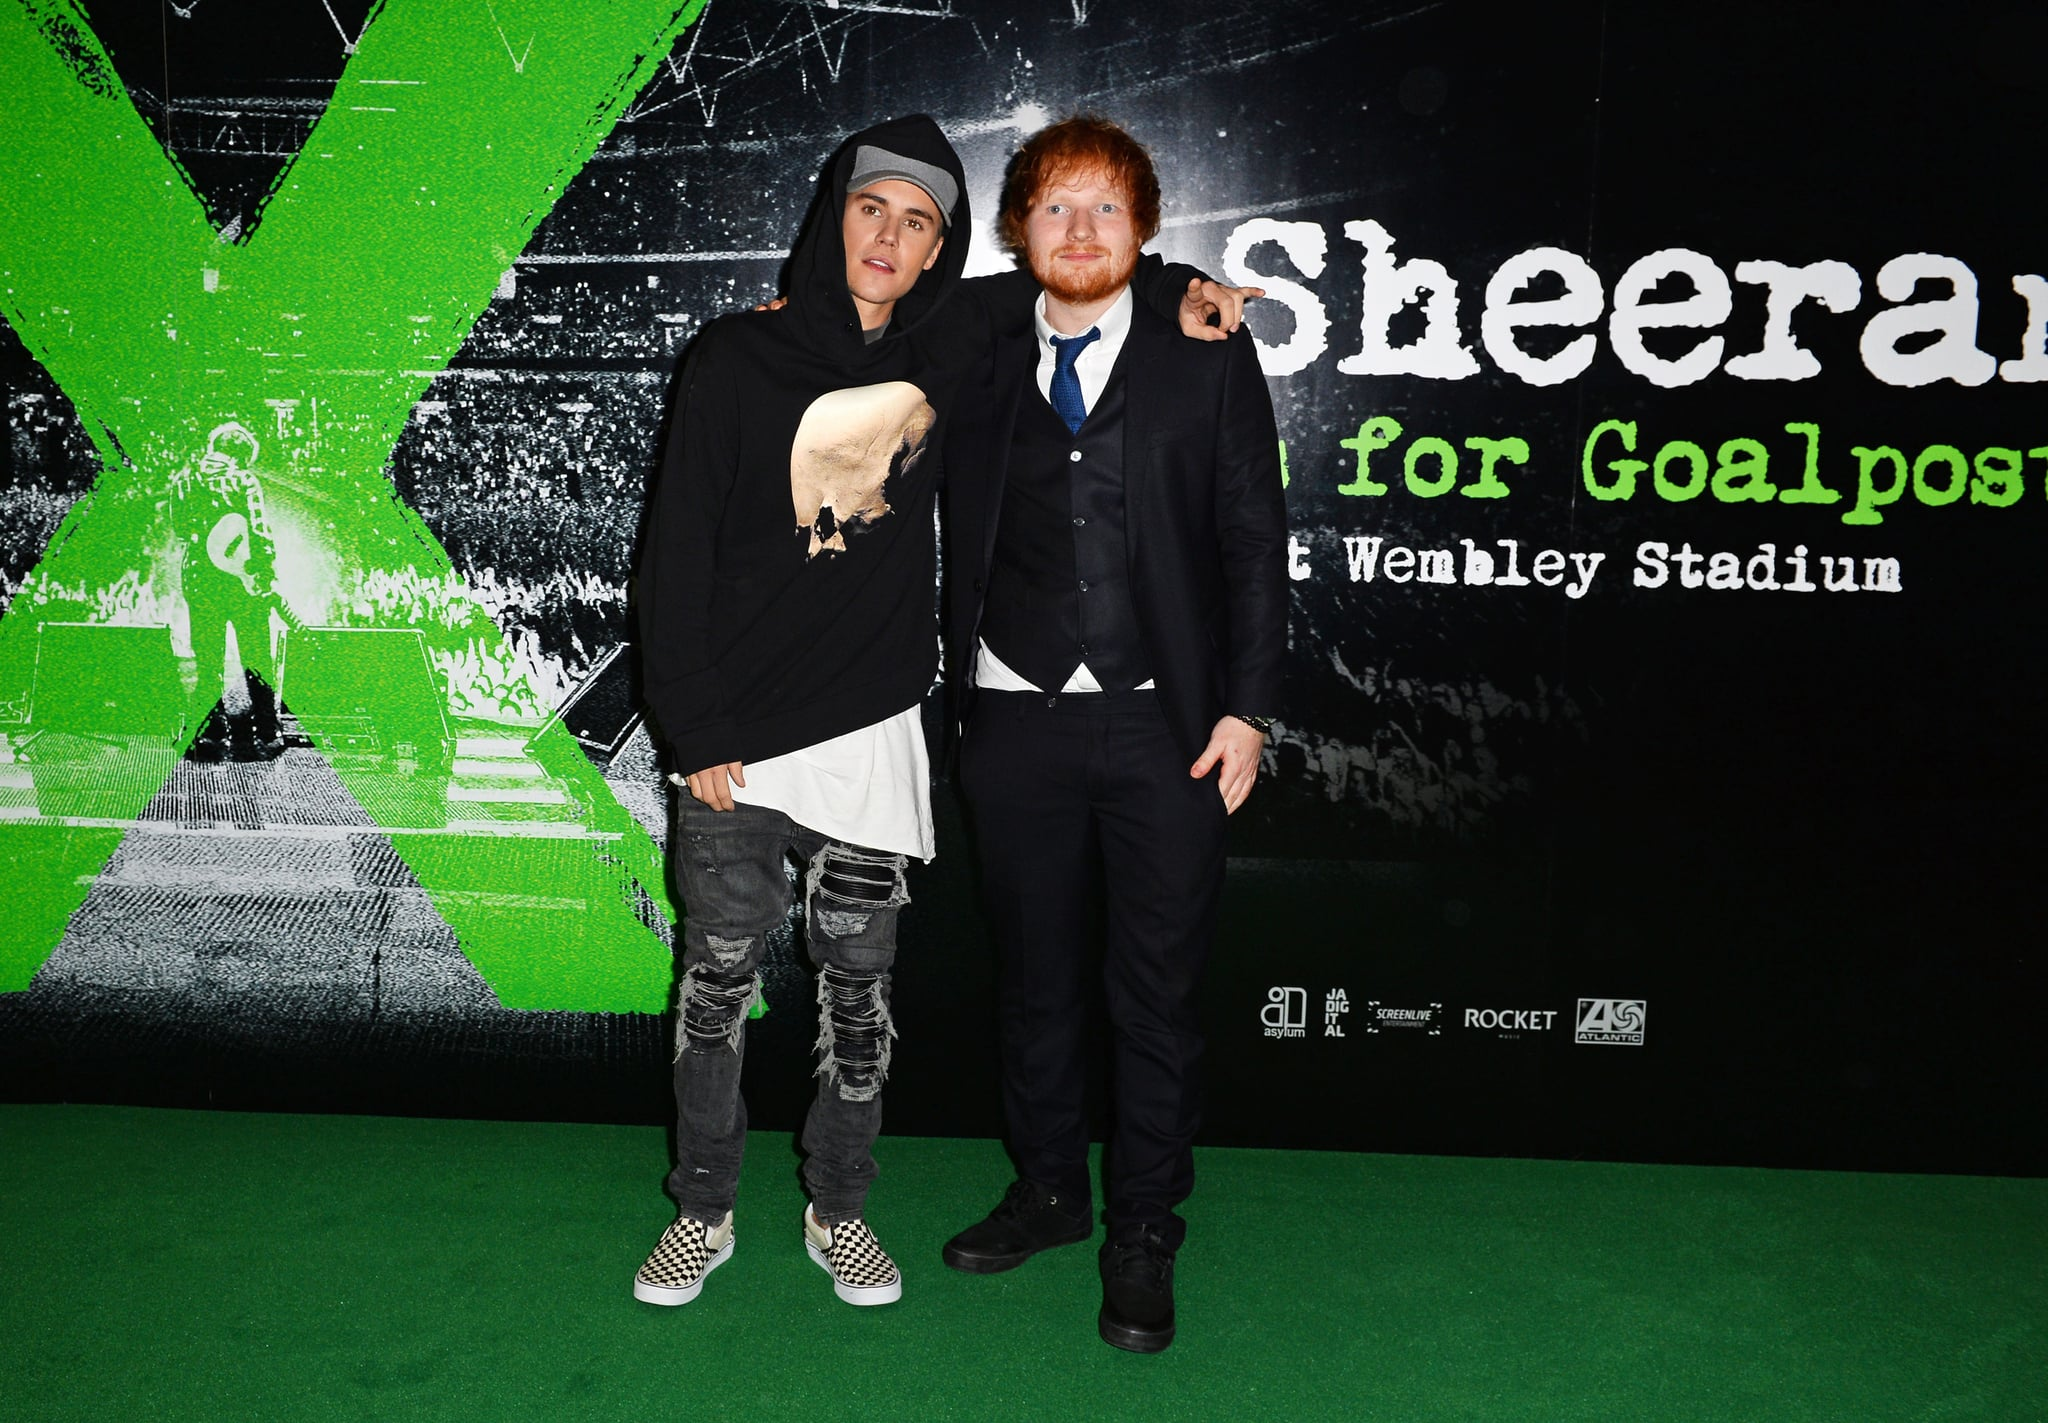 meet bieber singles Tennis dating singles justin bieber dating quiz 20 july 2018 tennis dating singles meet tennis singles locally and worldwide for dating, friendship, love and relationships at trade tennis ideas, techniques, instruction and.